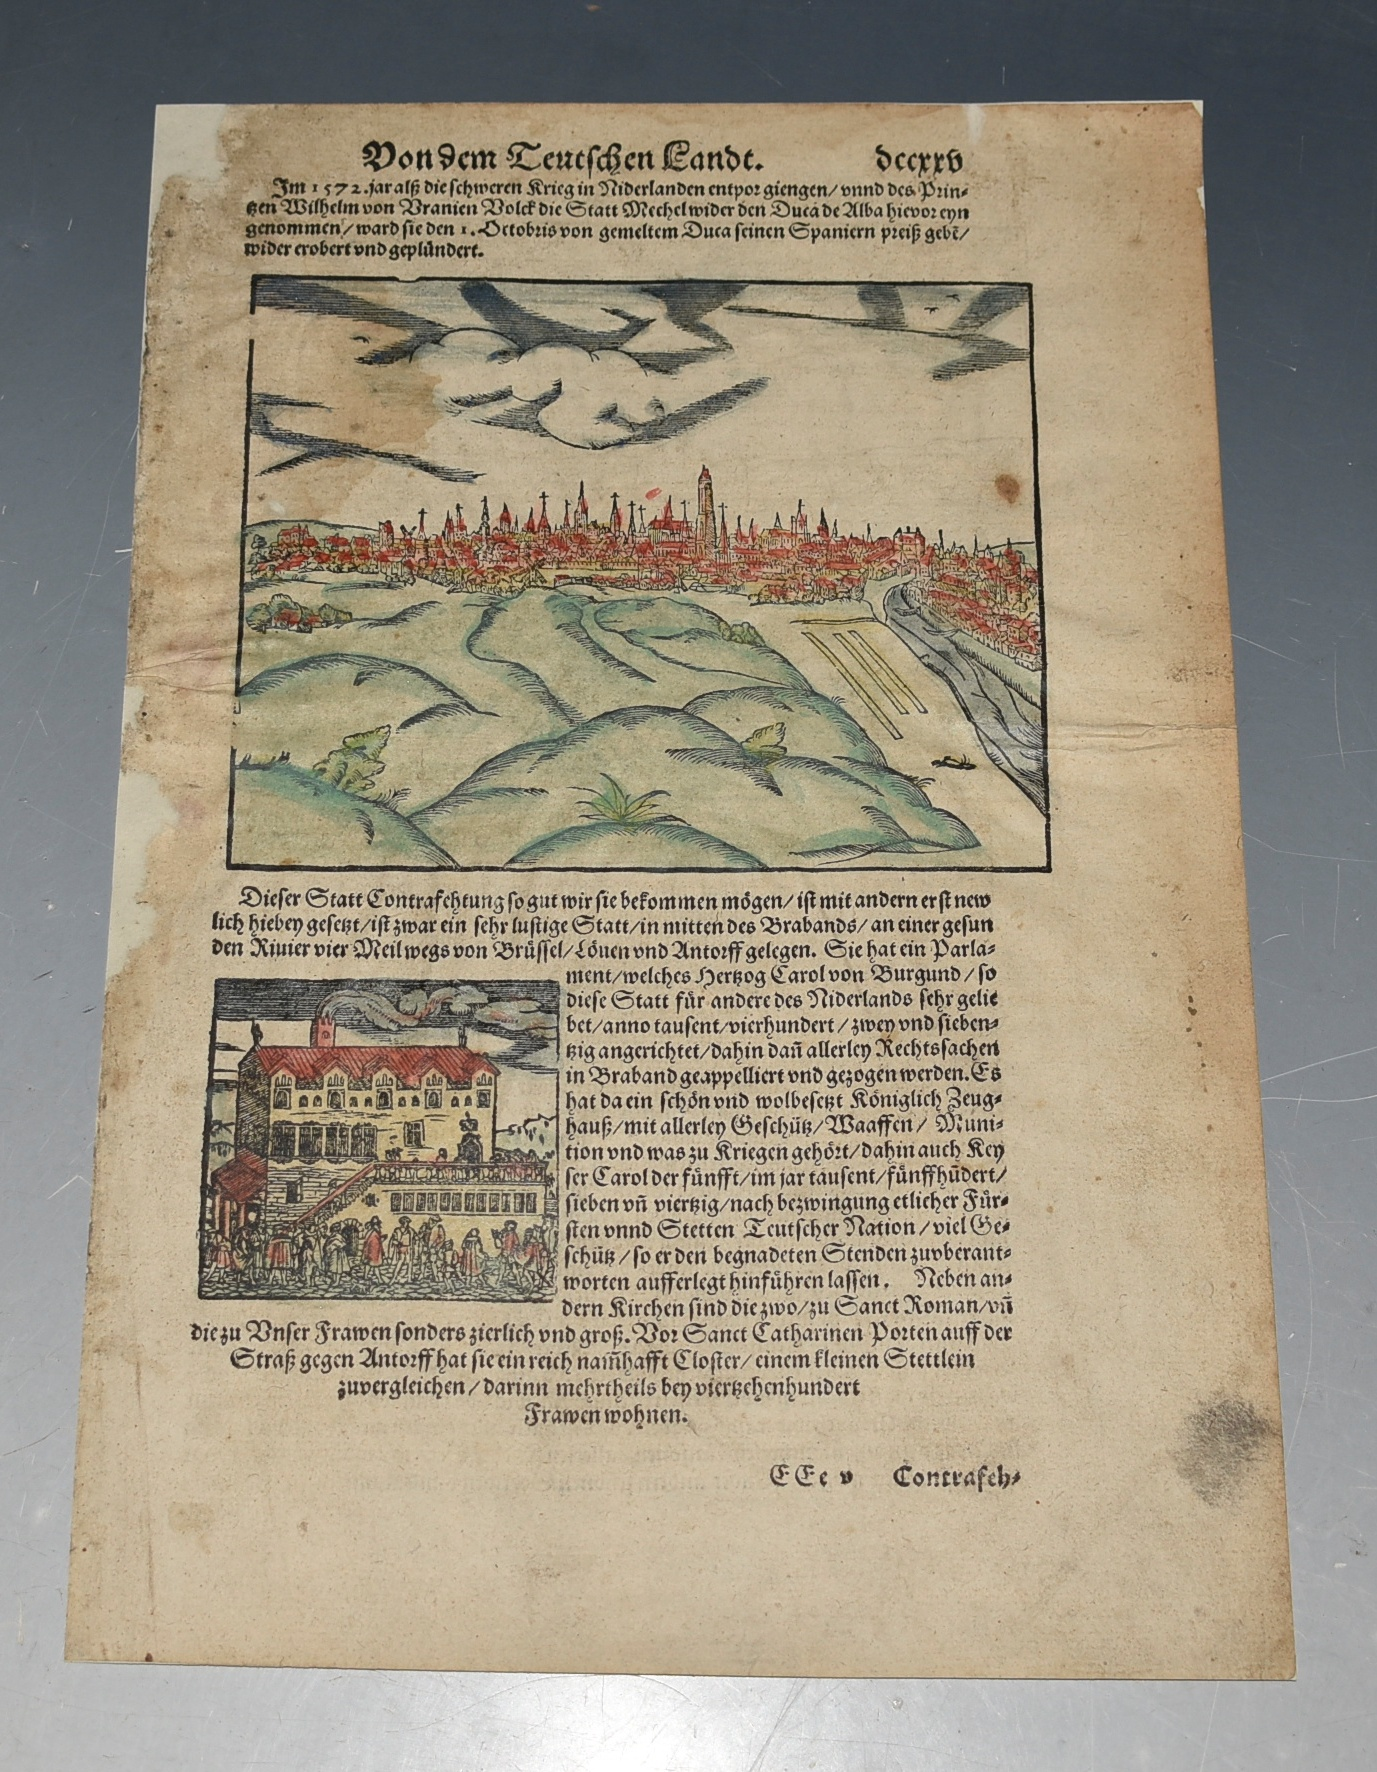 Image for EARLY View Constraschtung der Statt Herzogen Bosch. S-HERTOGENBOSCH Handgekleurde houtsnede van de stad, met aan verso een stadsgezicht op Mechelen. Hand-colored woodcut of the city, with a cityscape of Mechelen on the reverse.